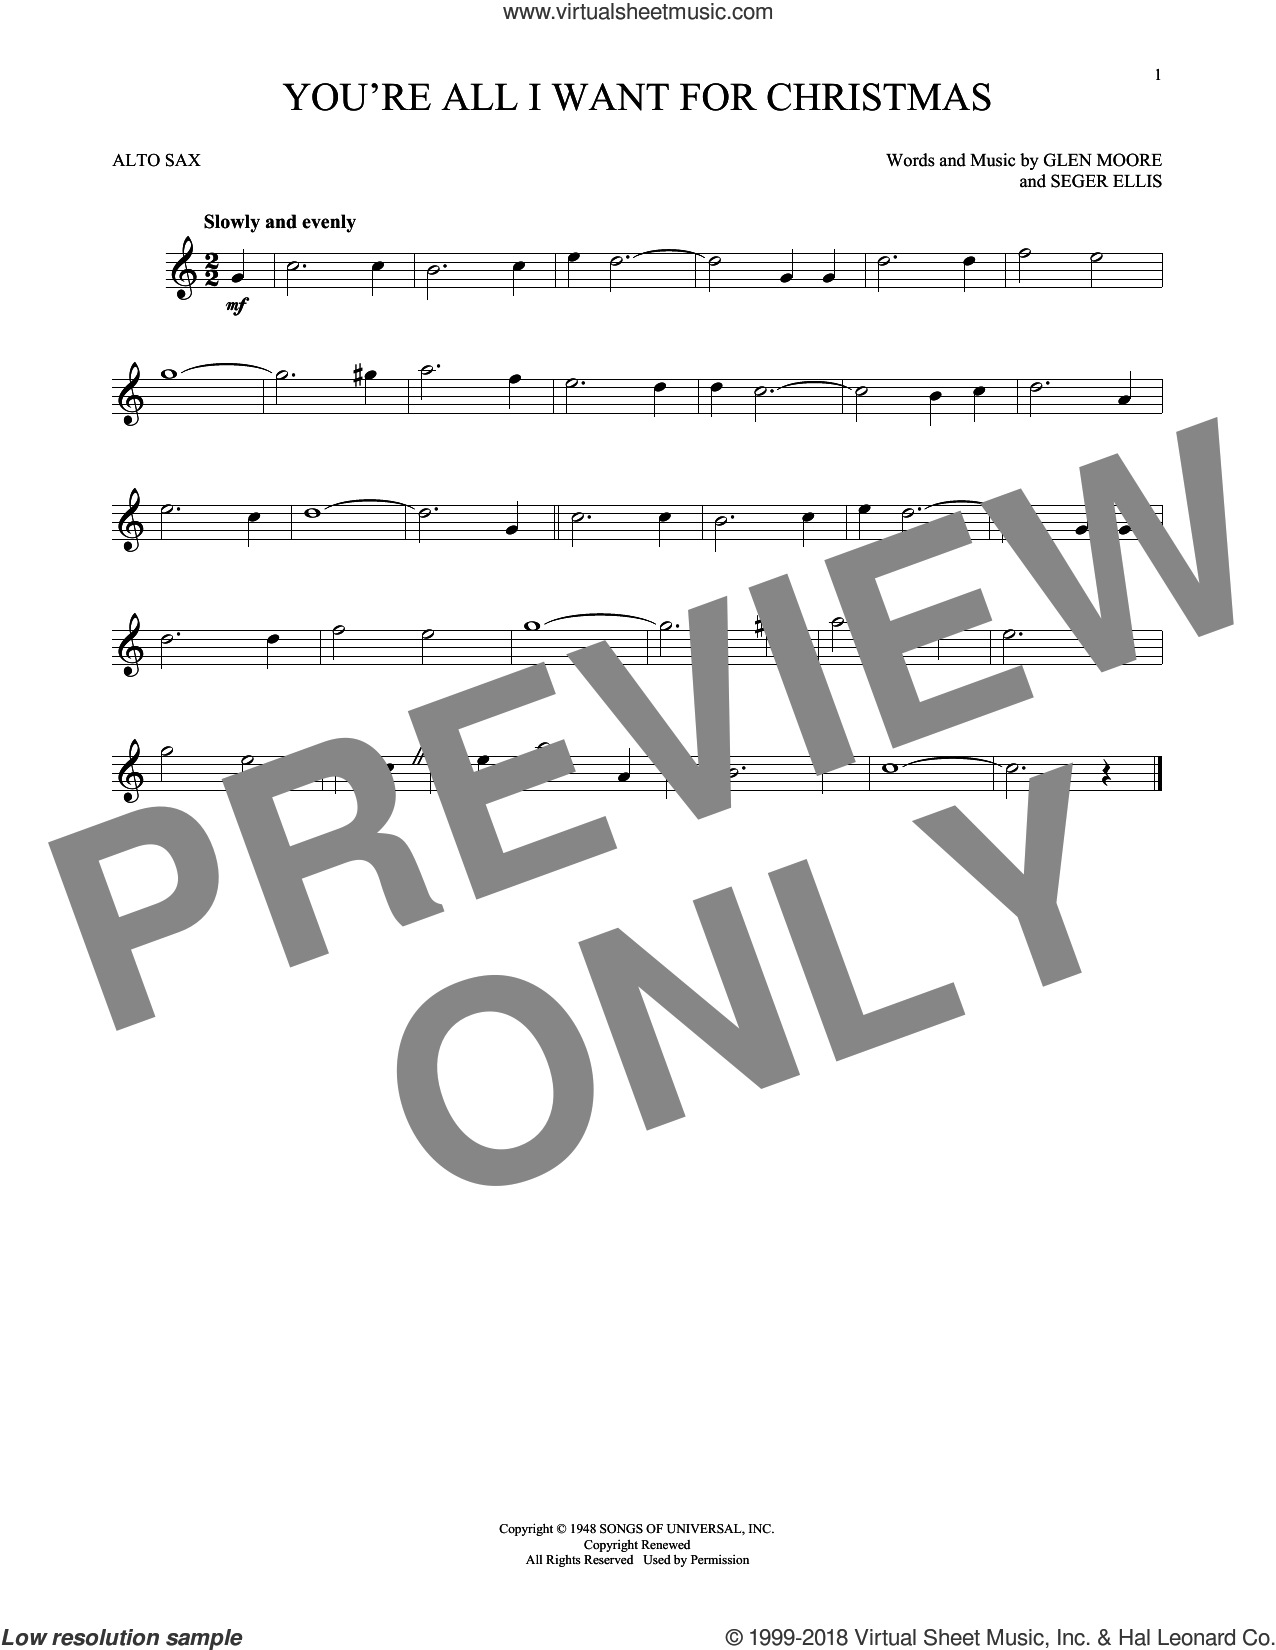 You're All I Want For Christmas sheet music for alto saxophone solo by Seger Ellis and Glen Moore. Score Image Preview.